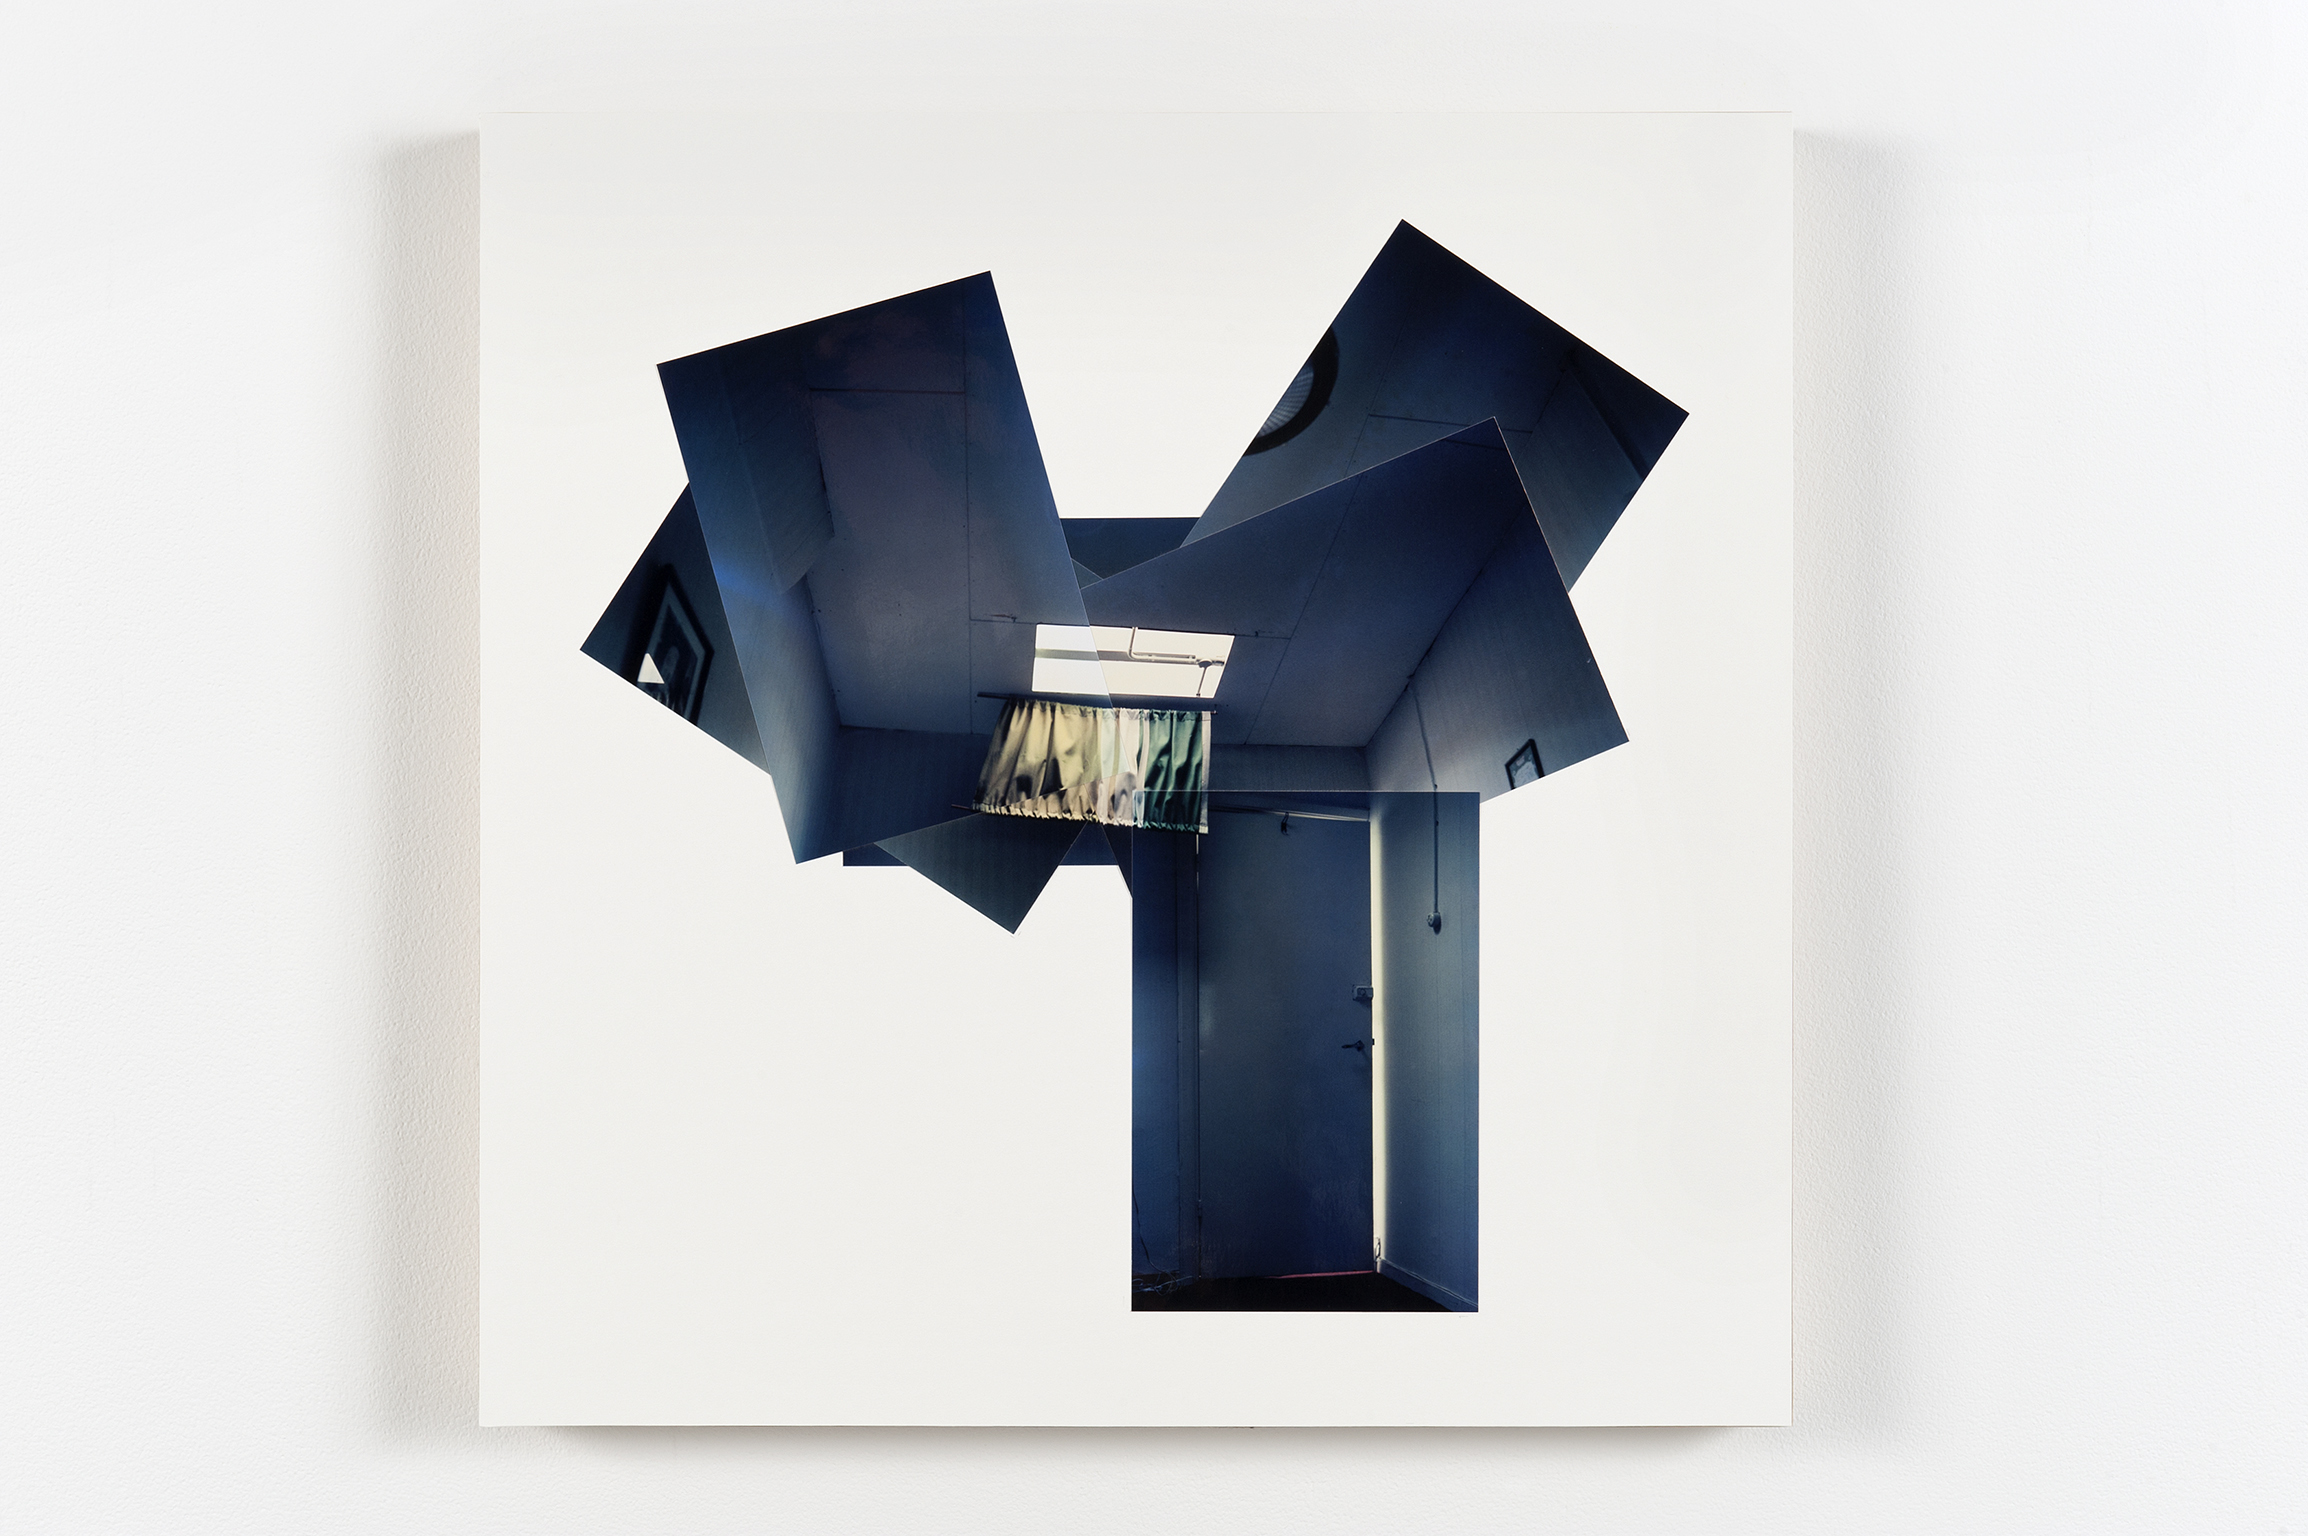 Robert Kleyn, Ceiling Pan, 1978, colour photographs on illustration board, 19 x 19 in. (48 x 48 cm) by